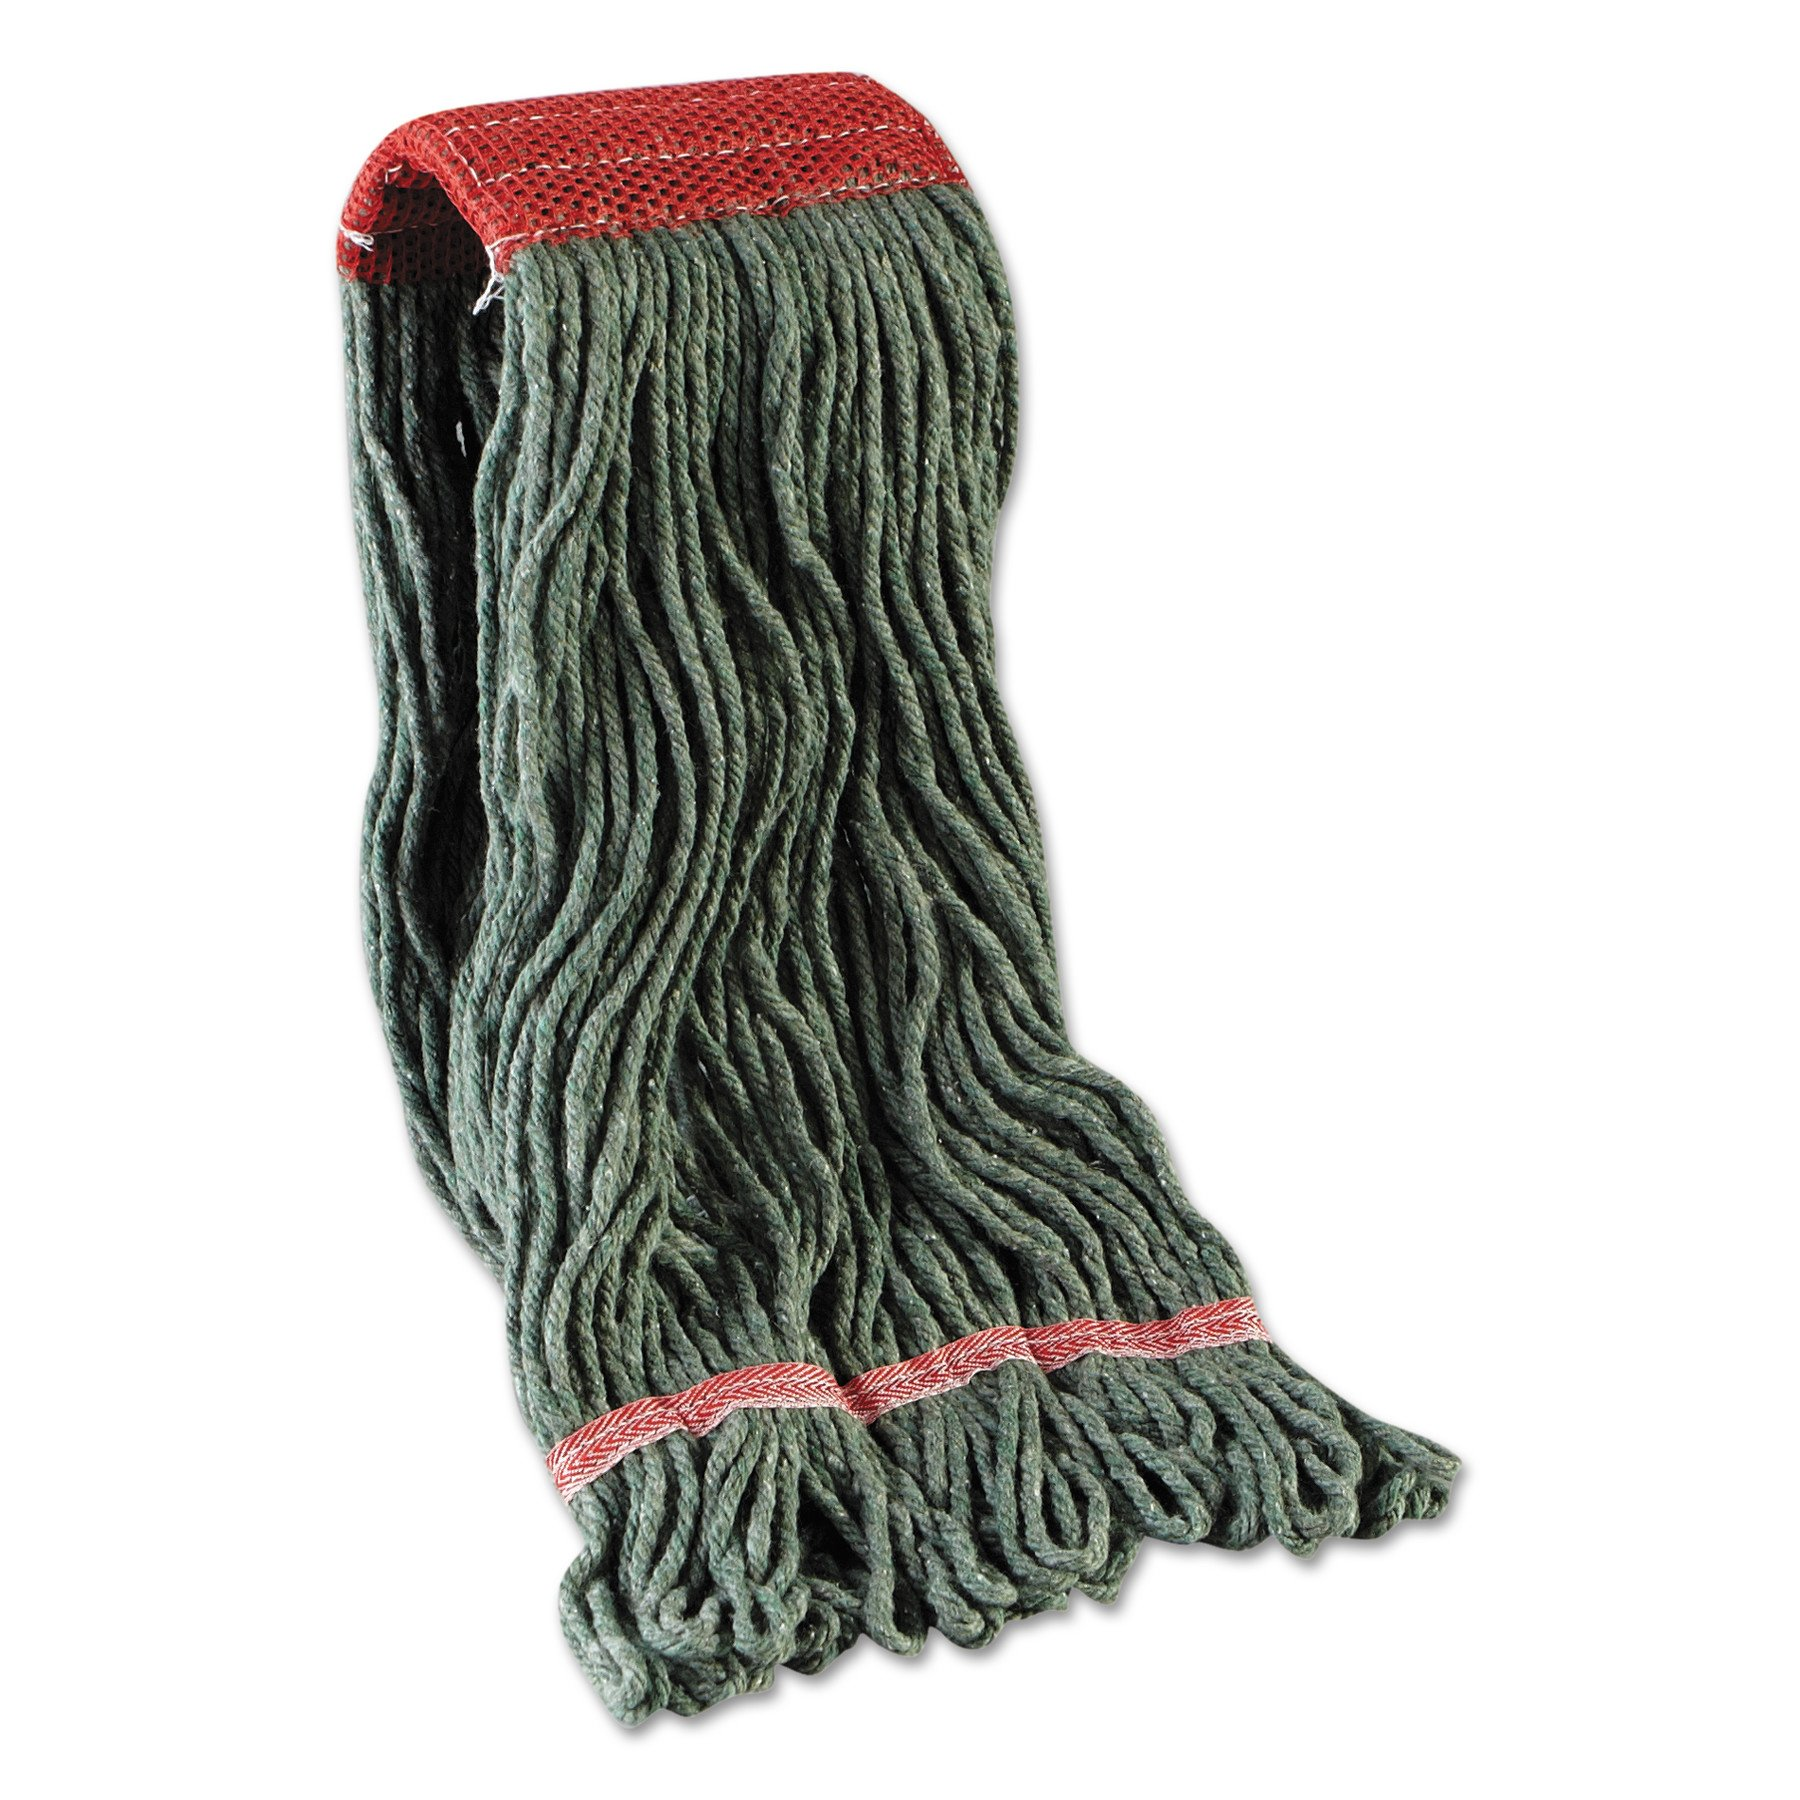 Boardwalk BWK403GN Mop Head, Premium Standard Head, Cotton/Rayon Fiber, Large, Green (Case of 12)